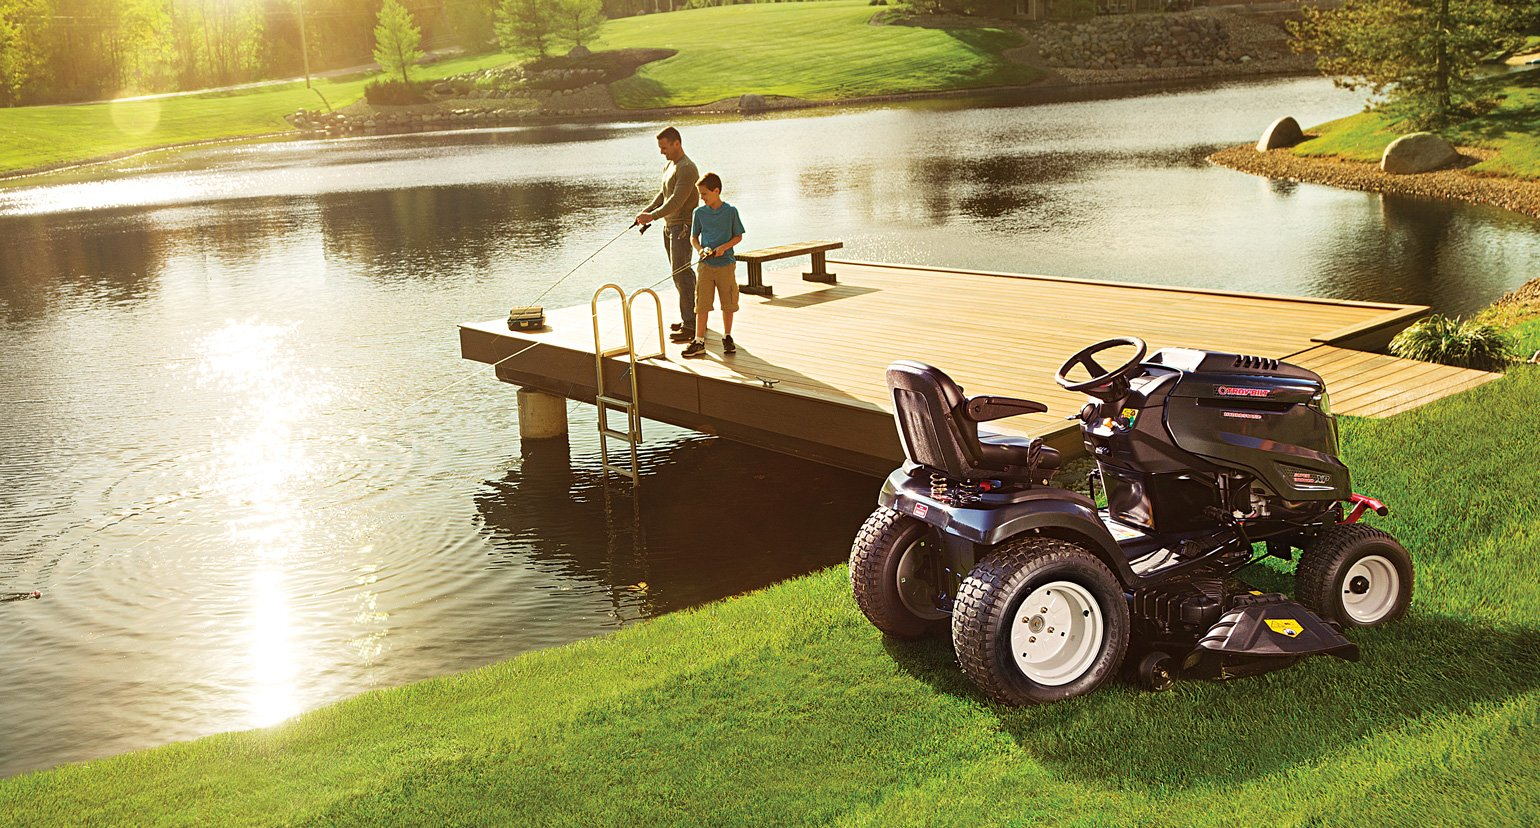 man on pier and riding lawn mower